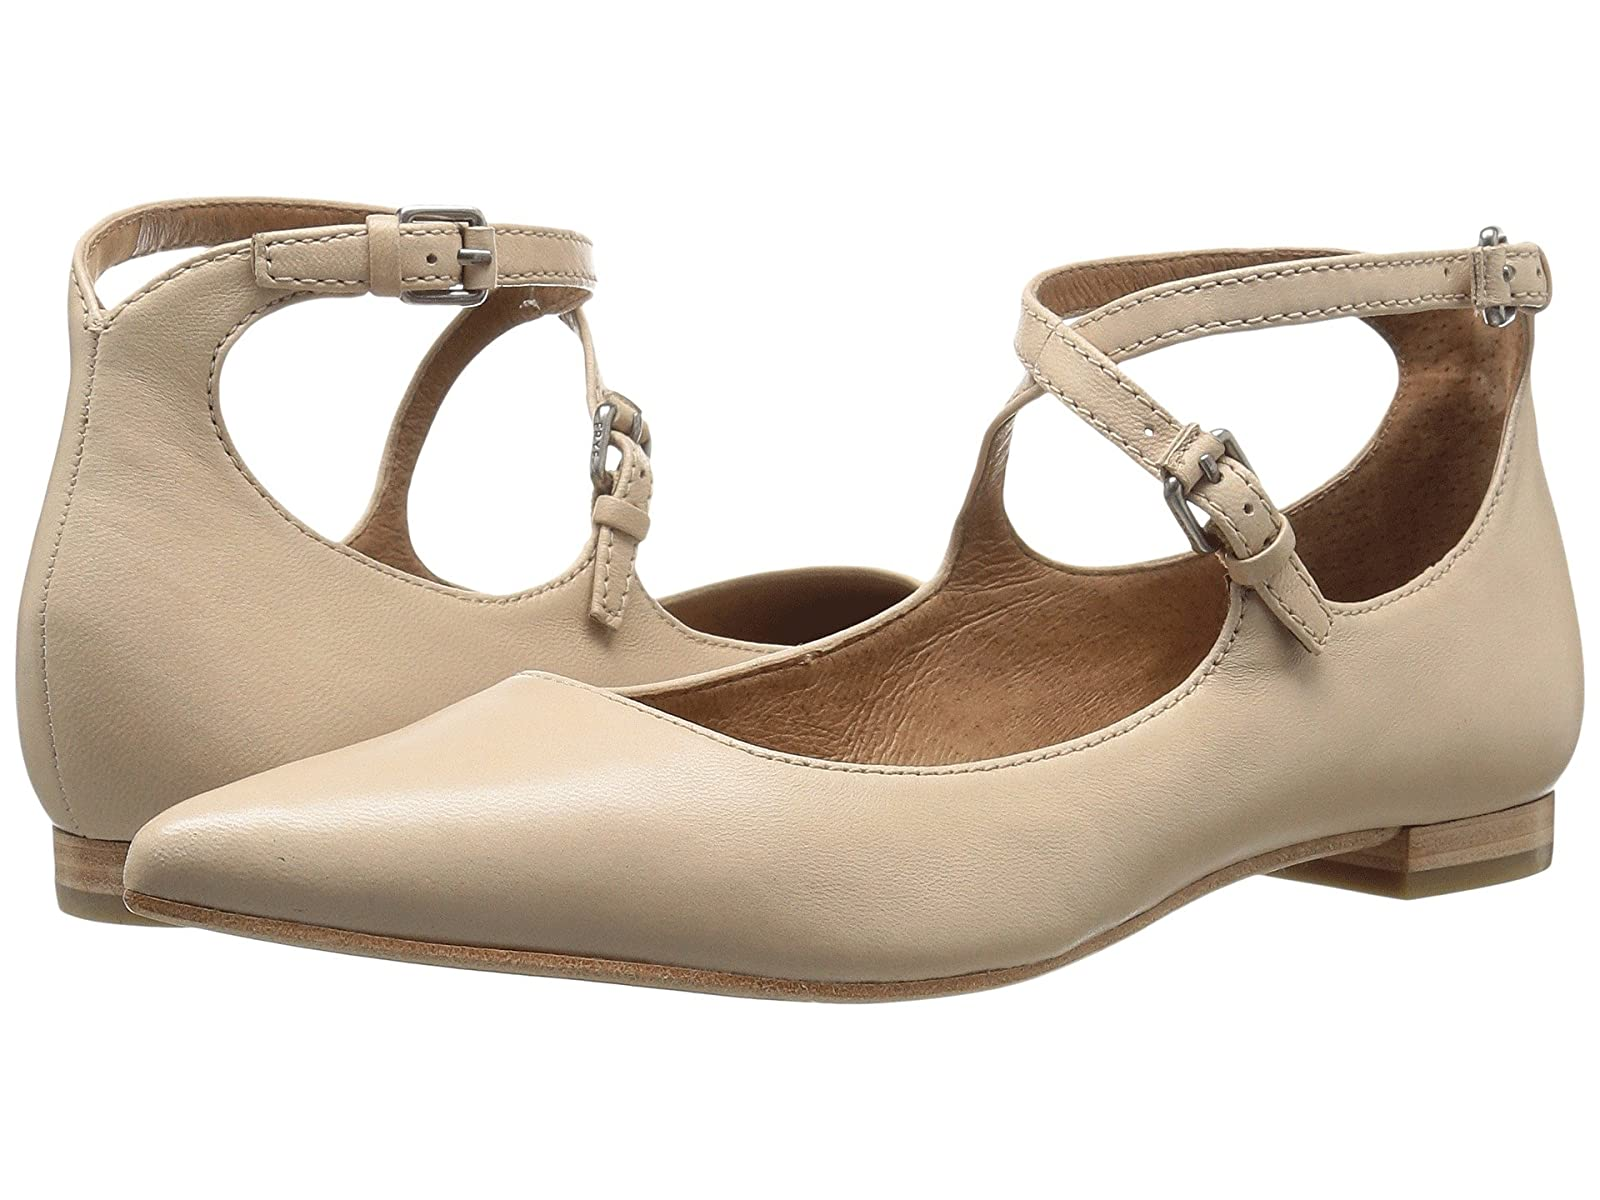 Frye Sienna Cross BalletCheap and distinctive eye-catching shoes